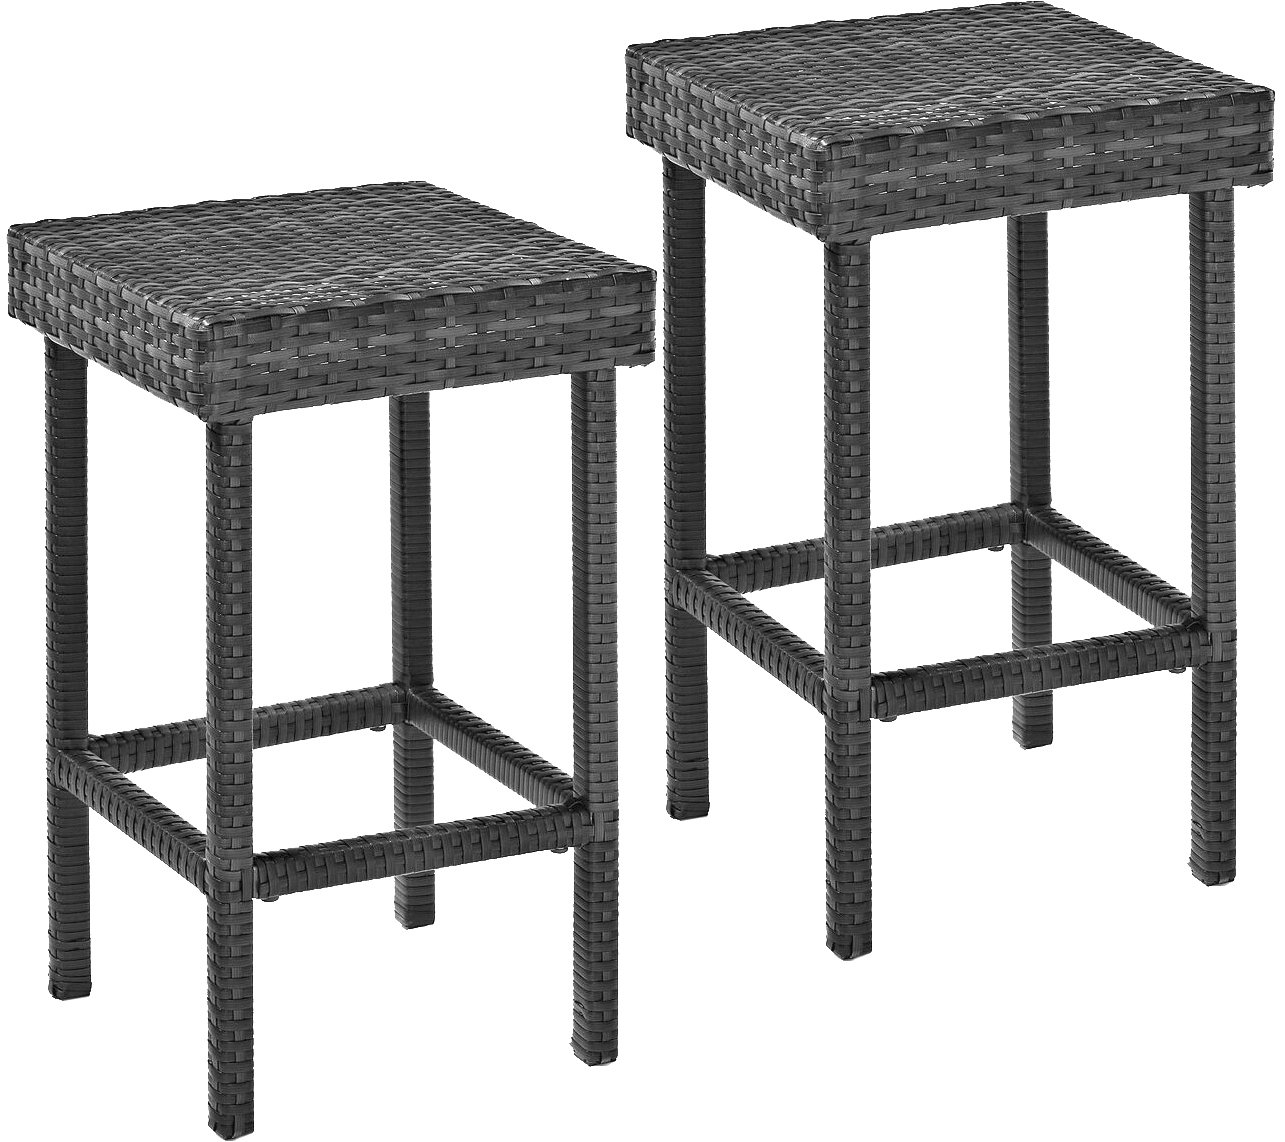 Crosley Furniture Palm Harbor Outdoor Wicker 24-inch Counter Height Stools - Grey (Set of 2) by Crosley Furniture